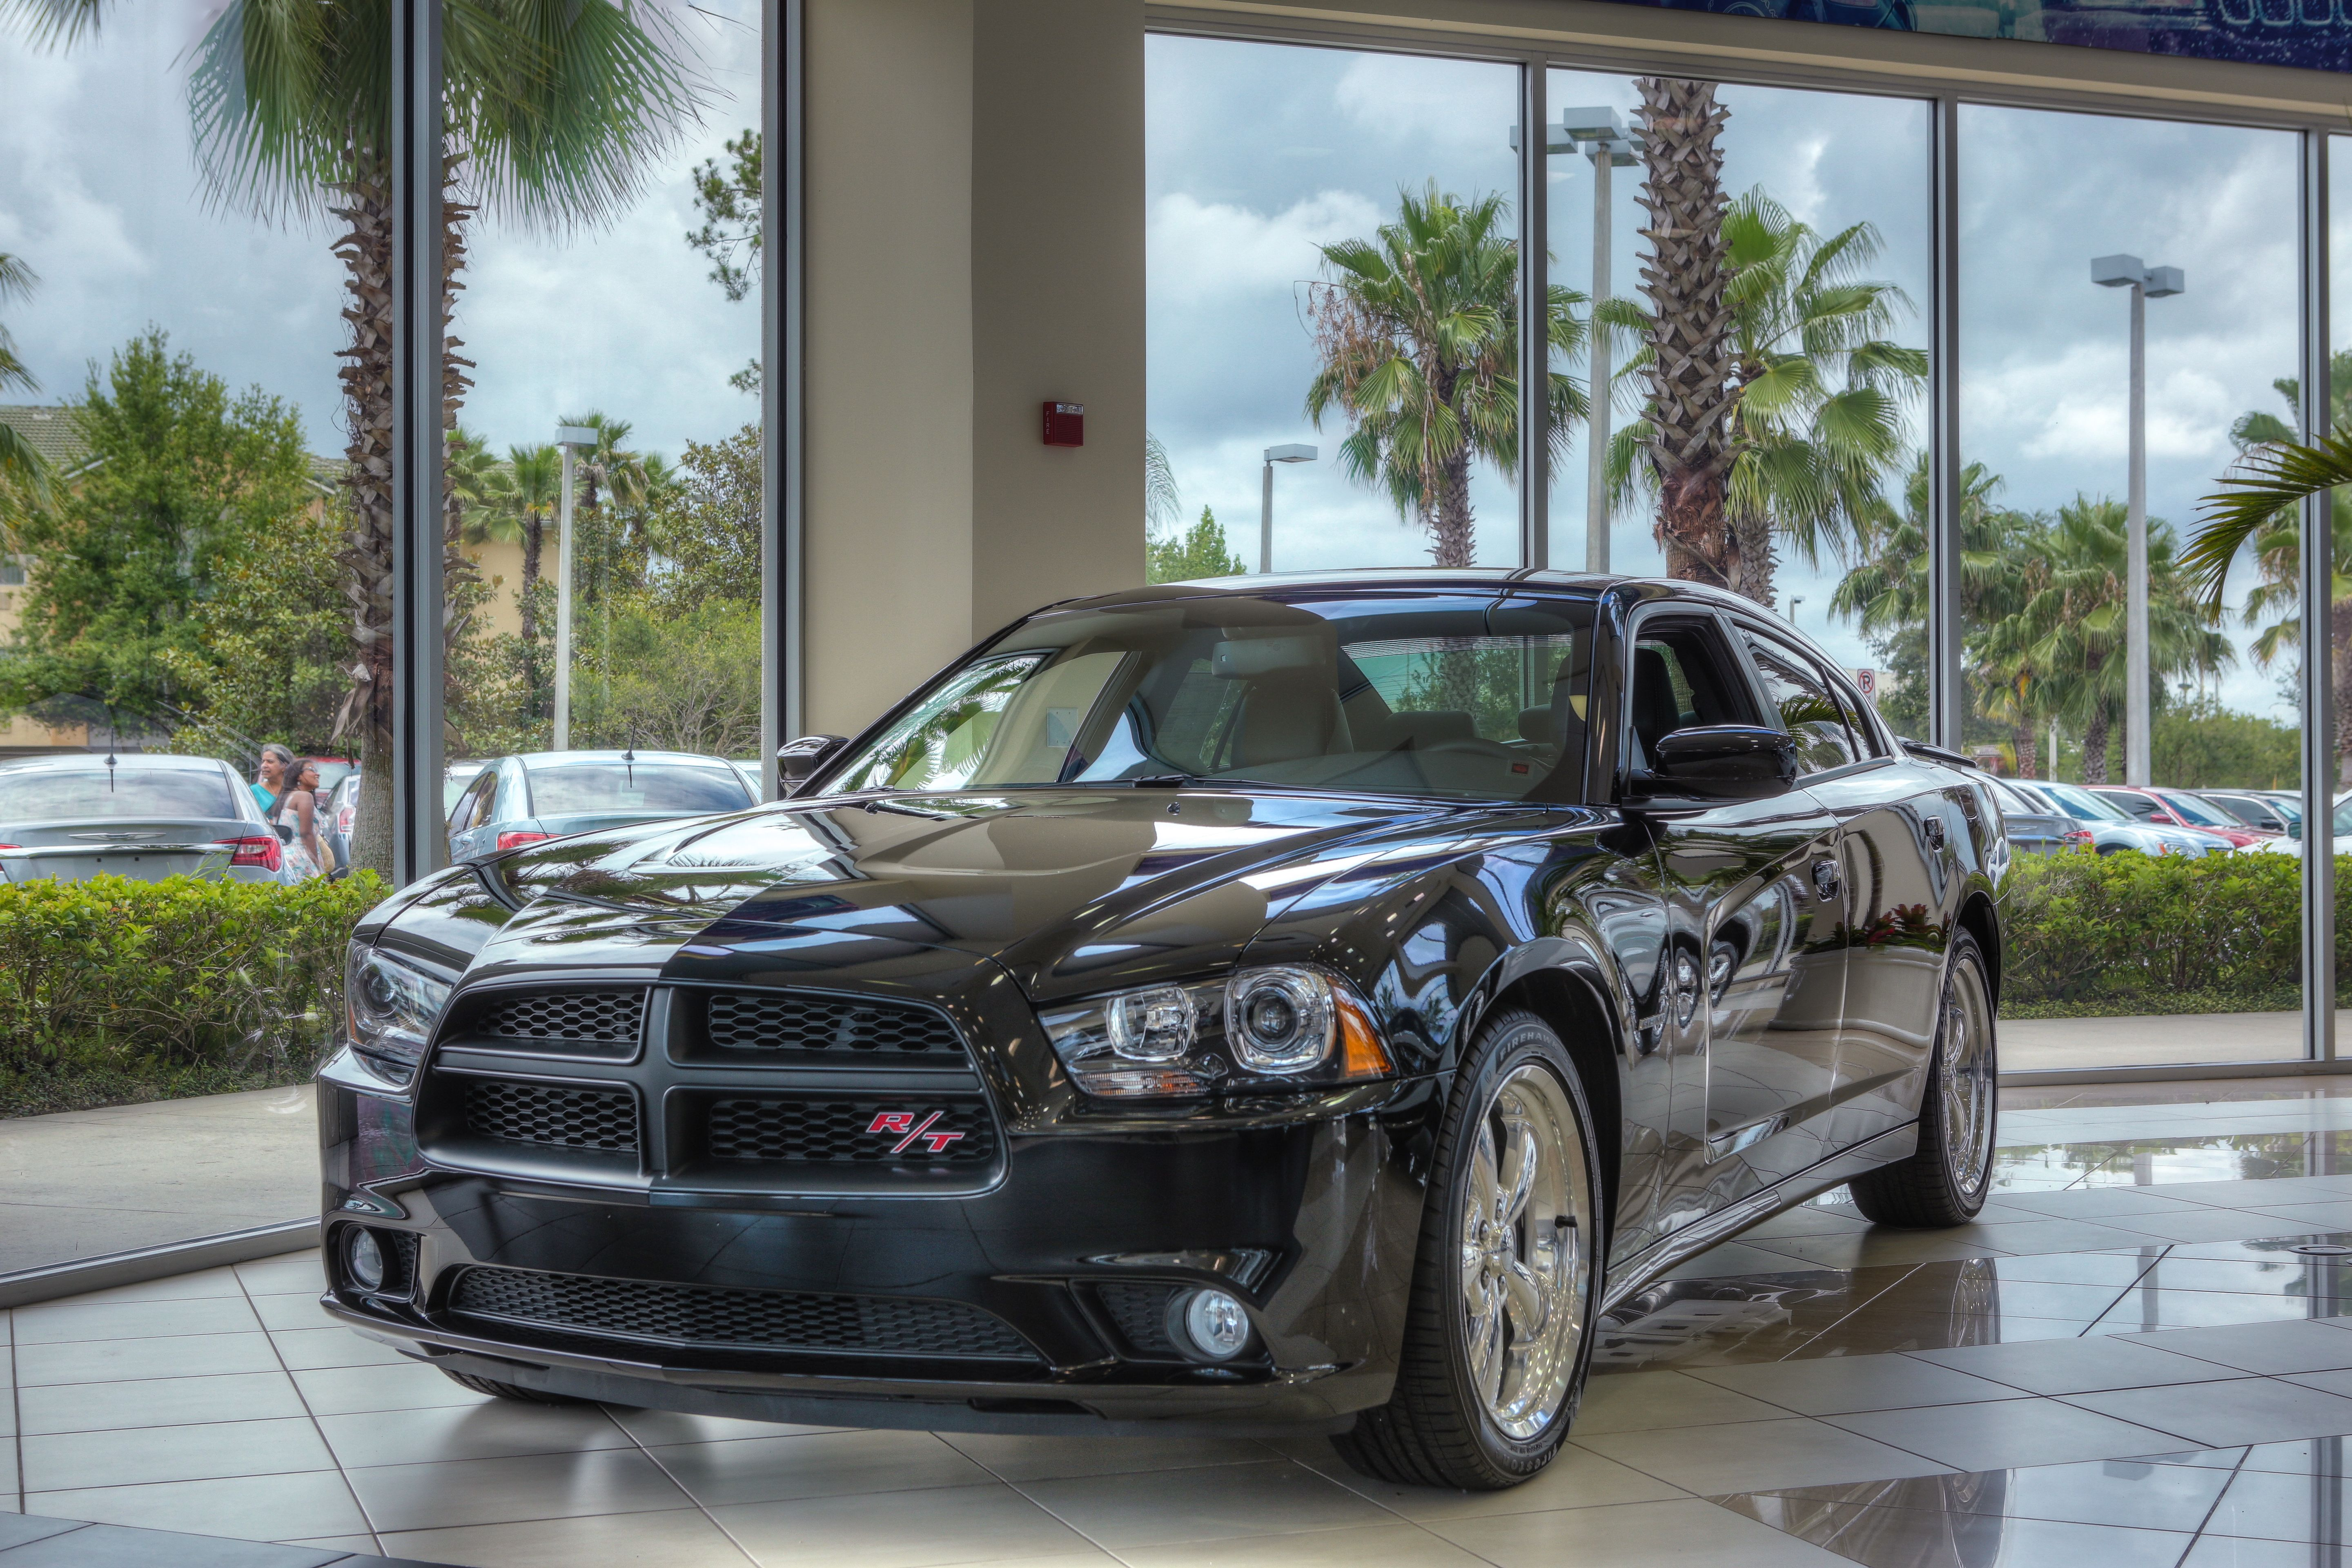 Dodge Charger RT On Display In The Showroom Of Central Florida - Chrysler dealership in orlando